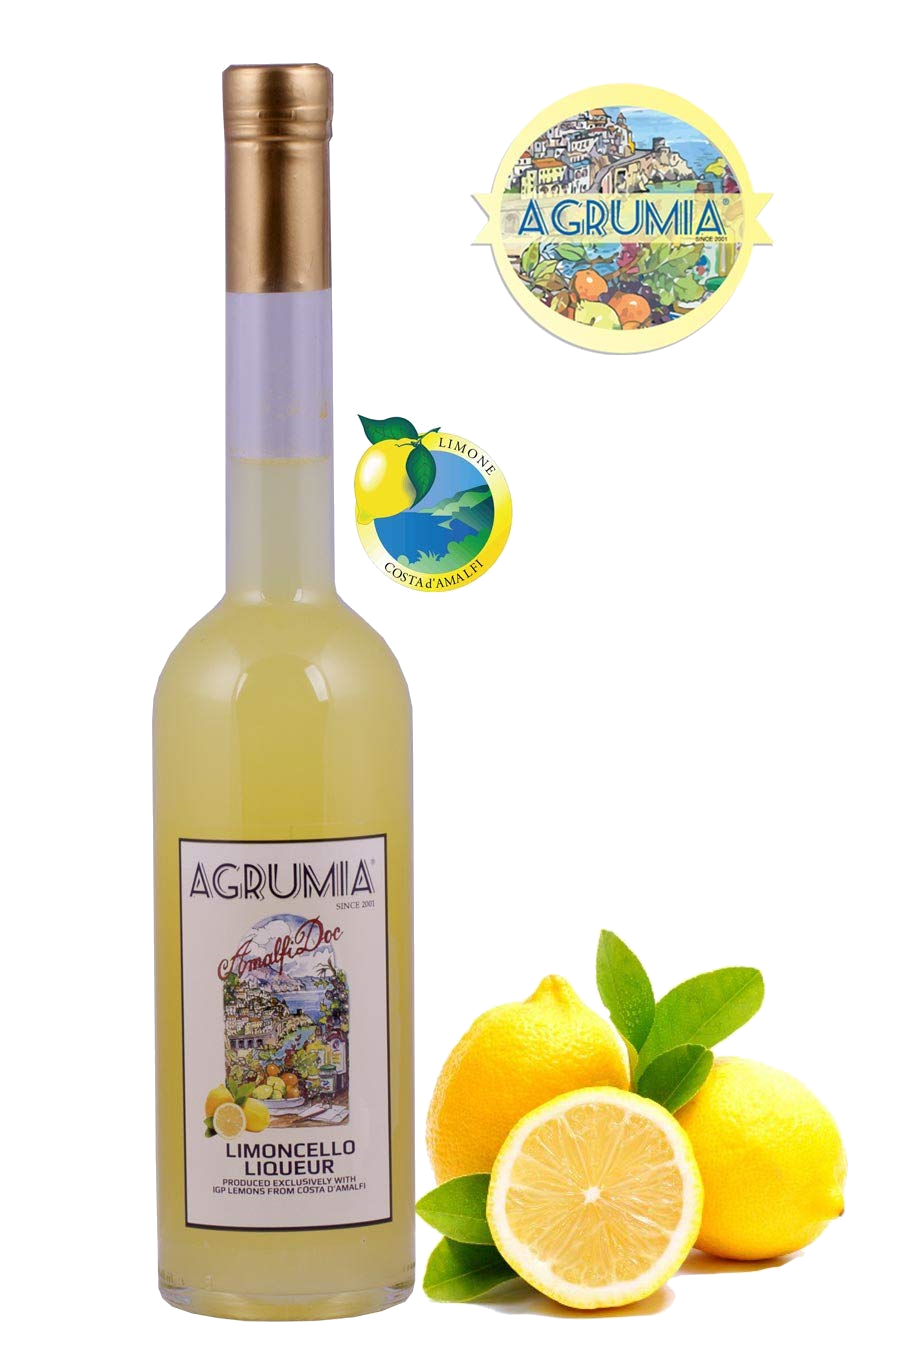 Agrumia liqueur bottle of limoncello flavour with representative lemons at its side